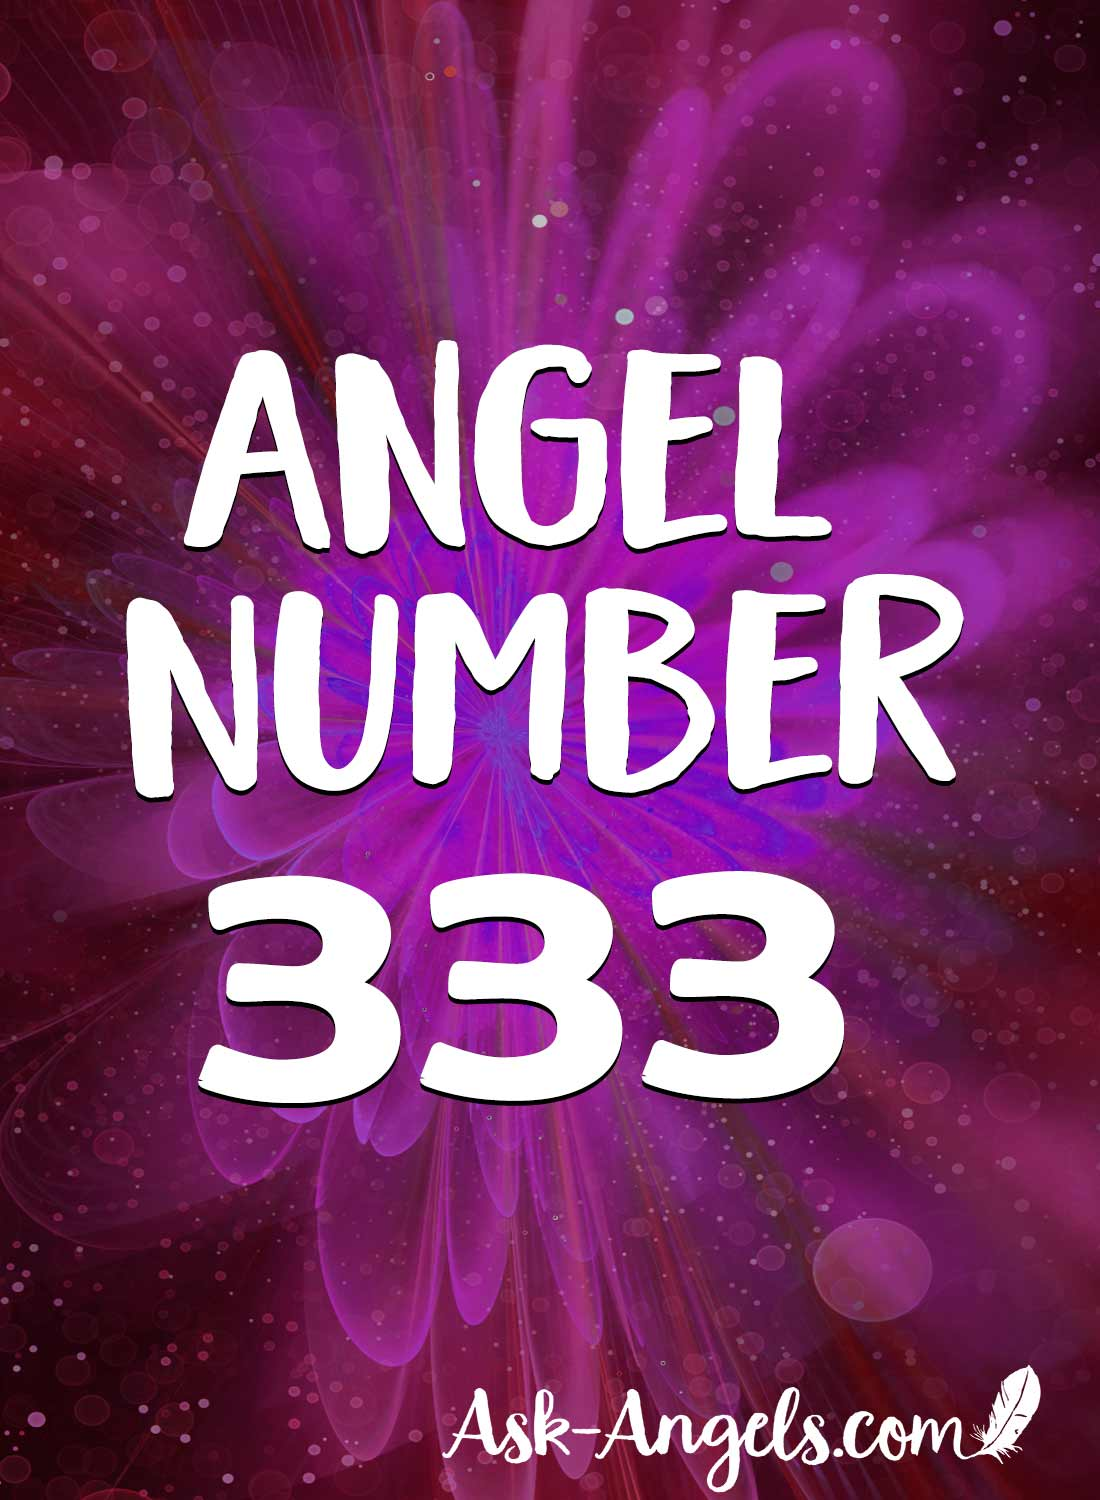 Angel Number 333 What Does It Mean and Why Are You Seeing It